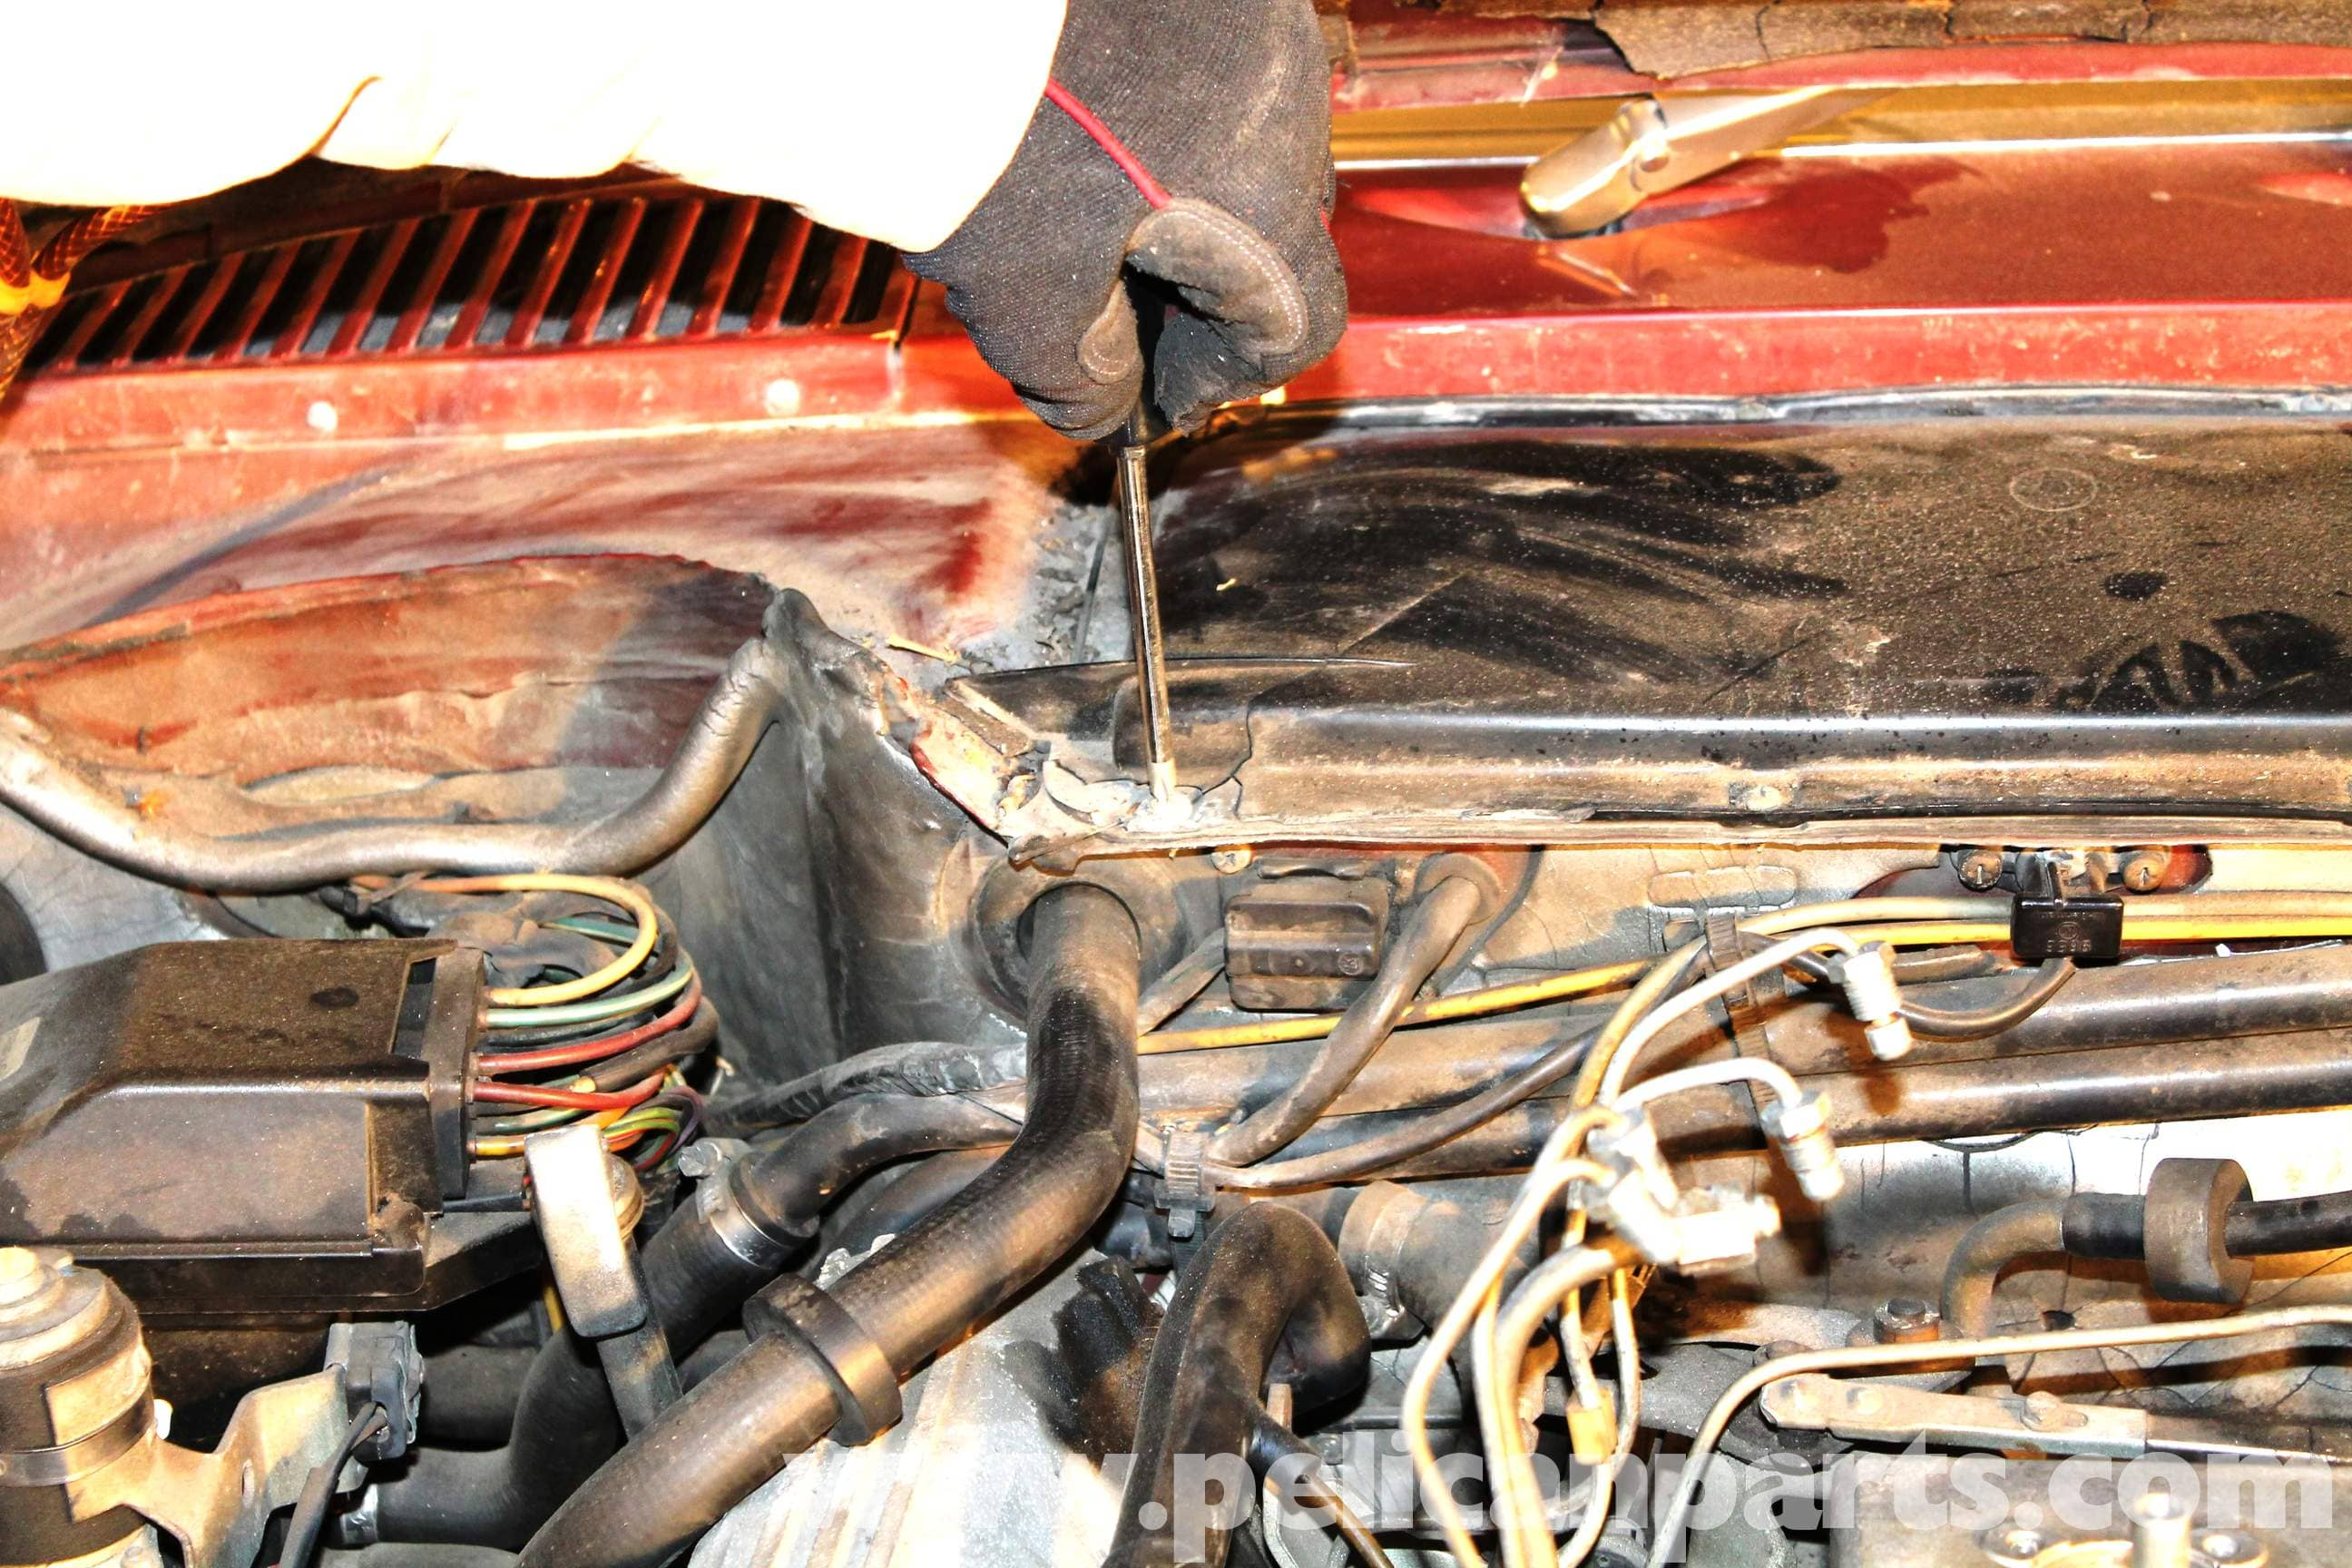 Front Windshield Replacement >> Mercedes-Benz R107 Heater Blower Motor Replacement | 1972 ...